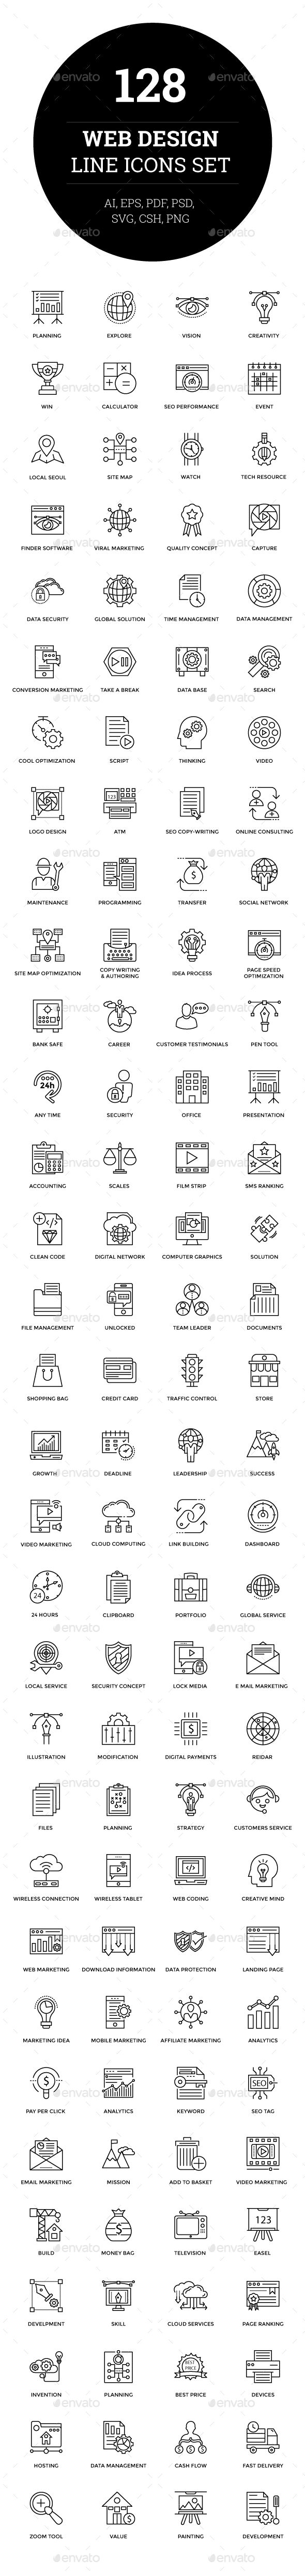 Pin by Sesathasladpx on Logo Design Line icon, Web